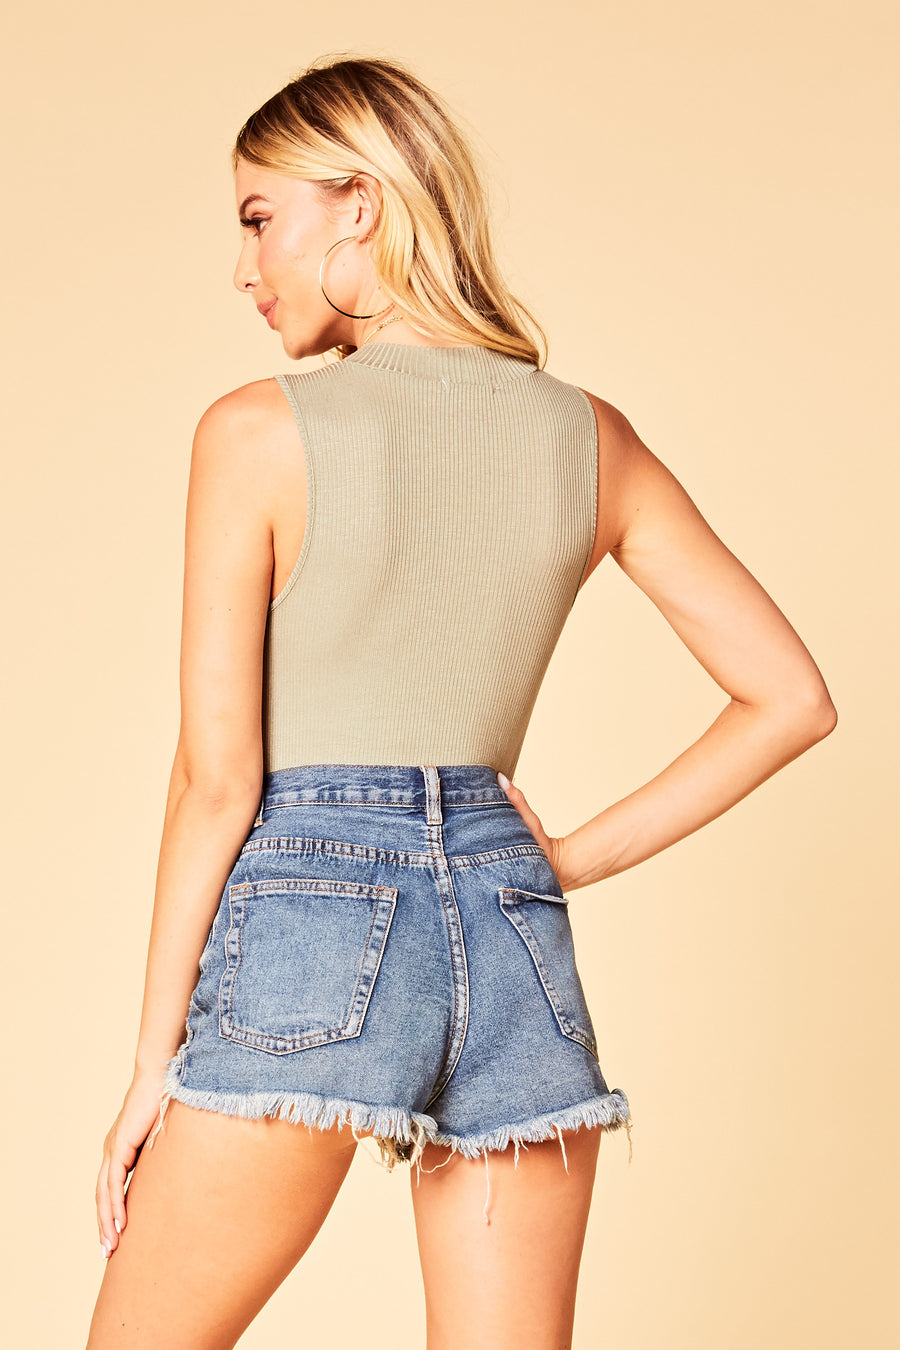 Mock Me Bodysuit - HoneyBum